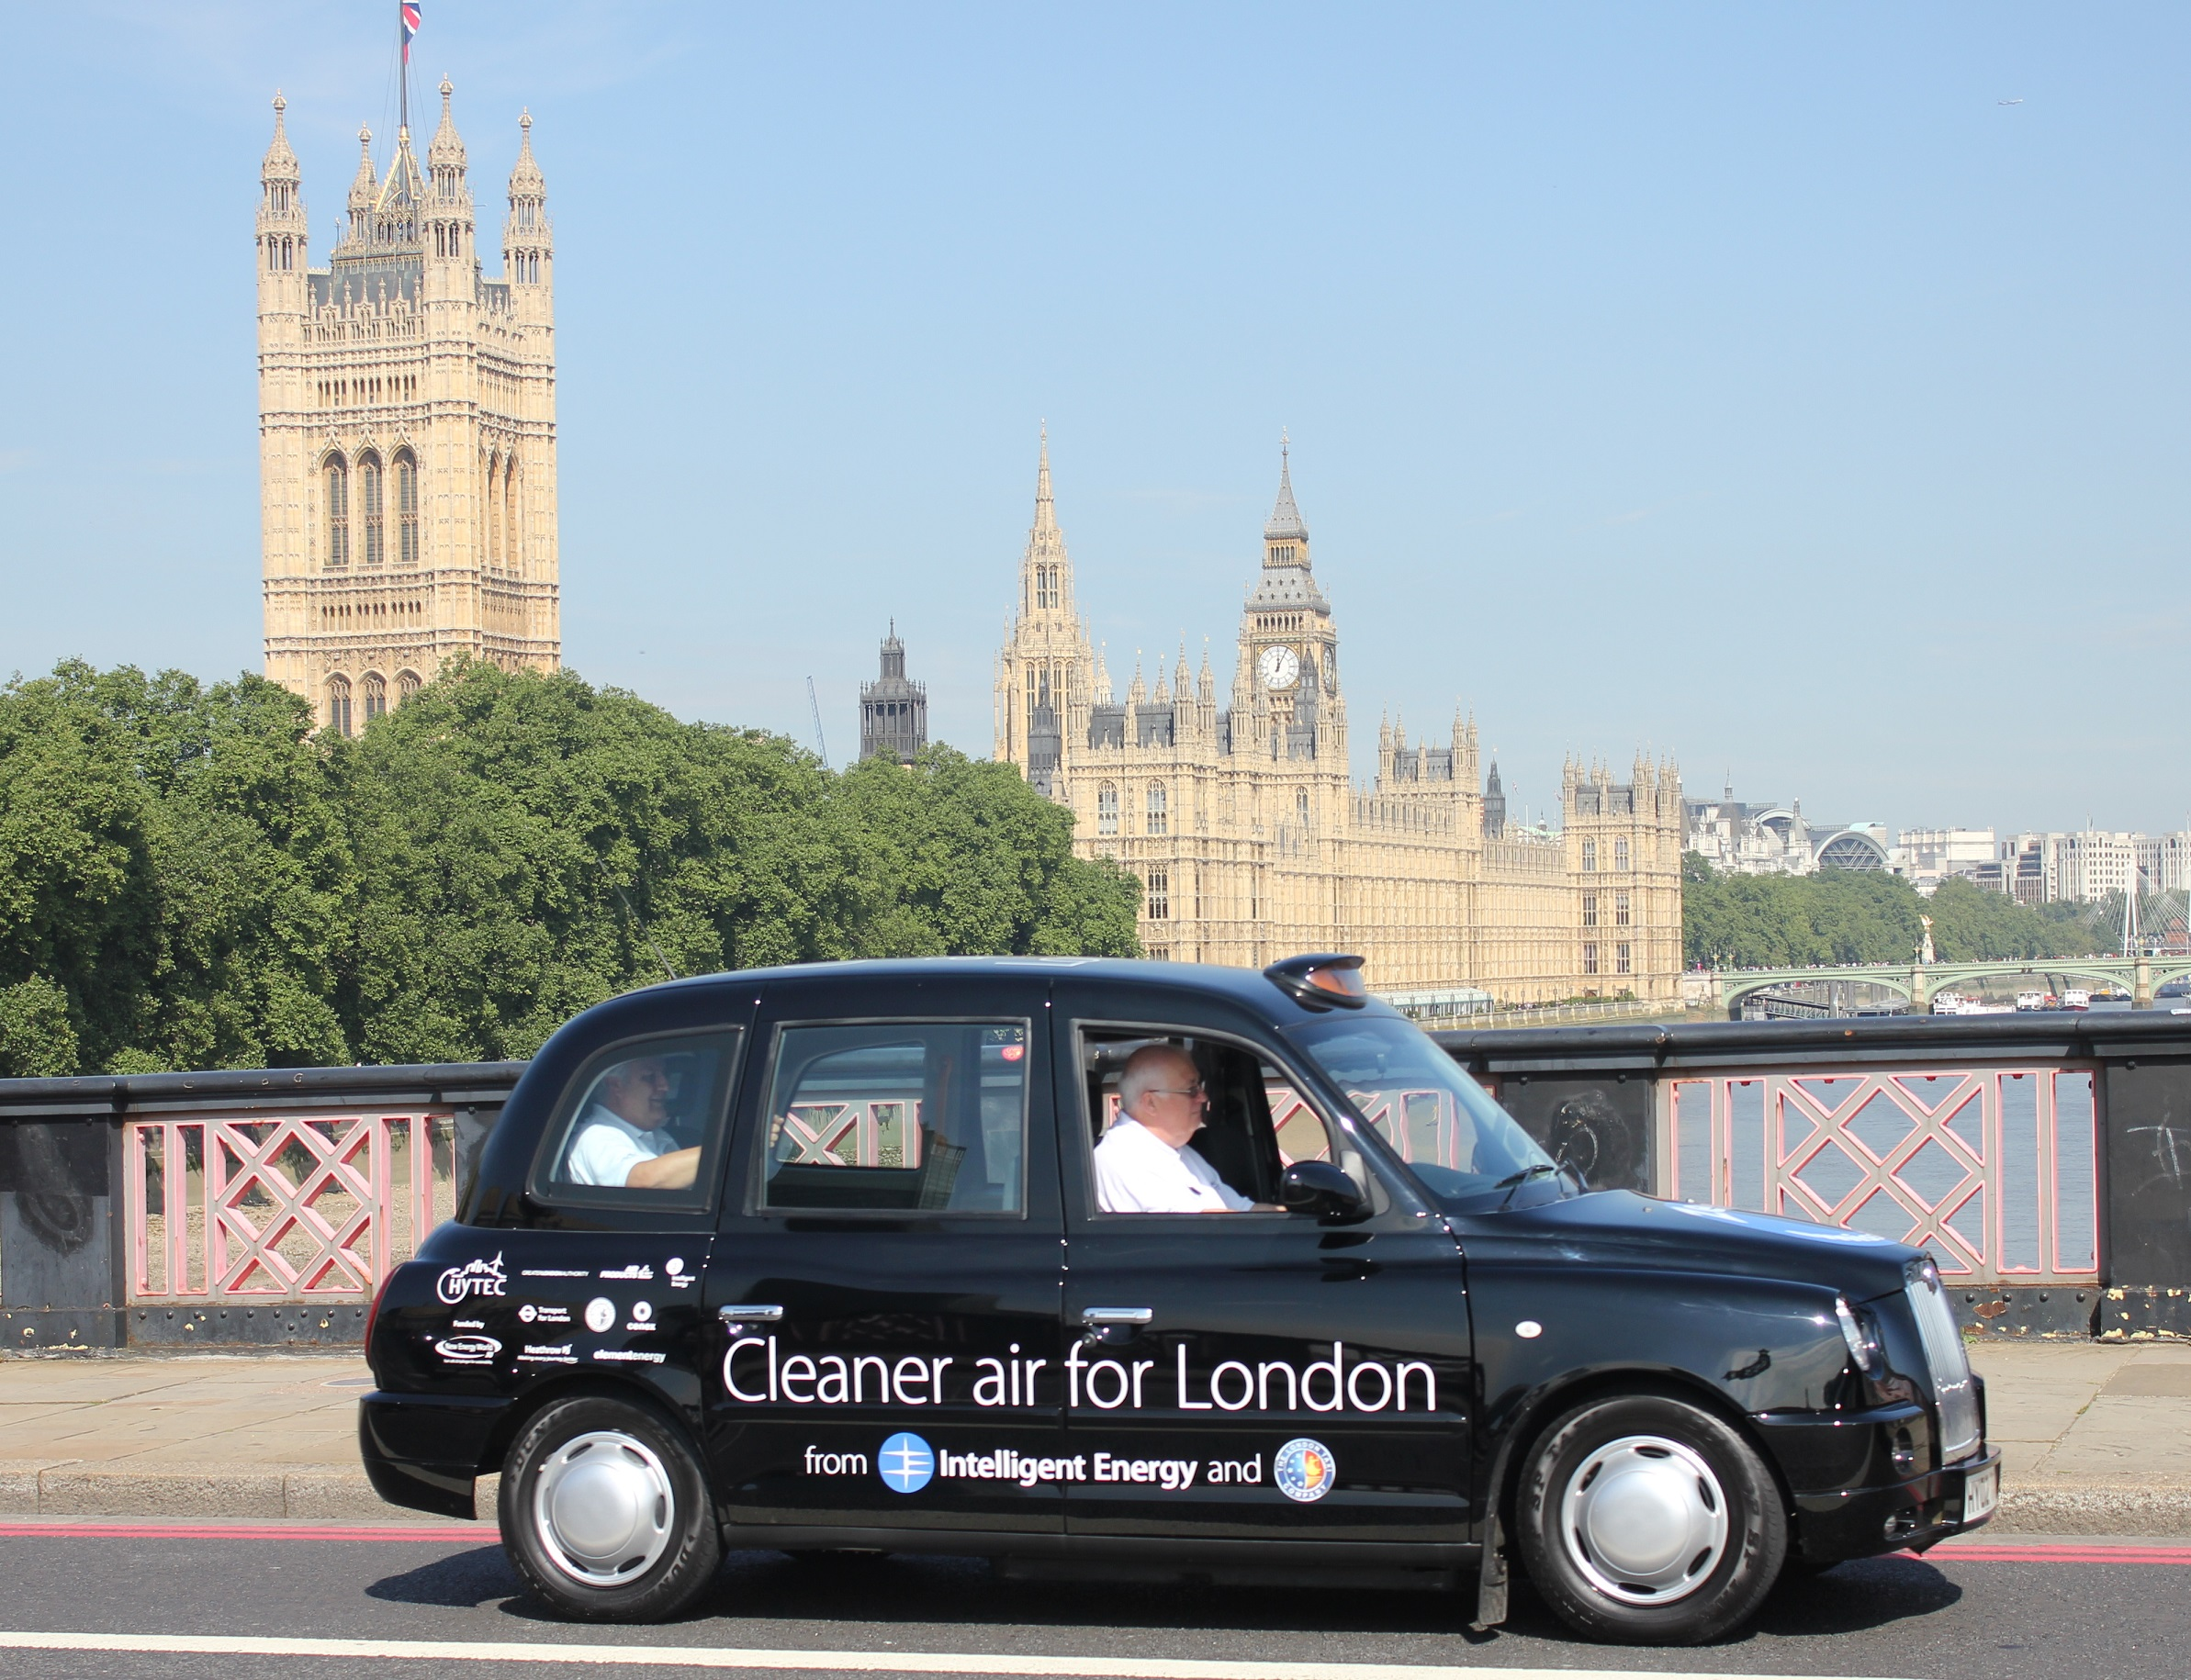 Intelligent Energy has led a consortium to introduce zero-emission fuel cell electric taxis to London. The consortium developed and integrated robust, high-efficiency, fuel cell electric powertrains into TX4 taxis from The London Taxi Company.